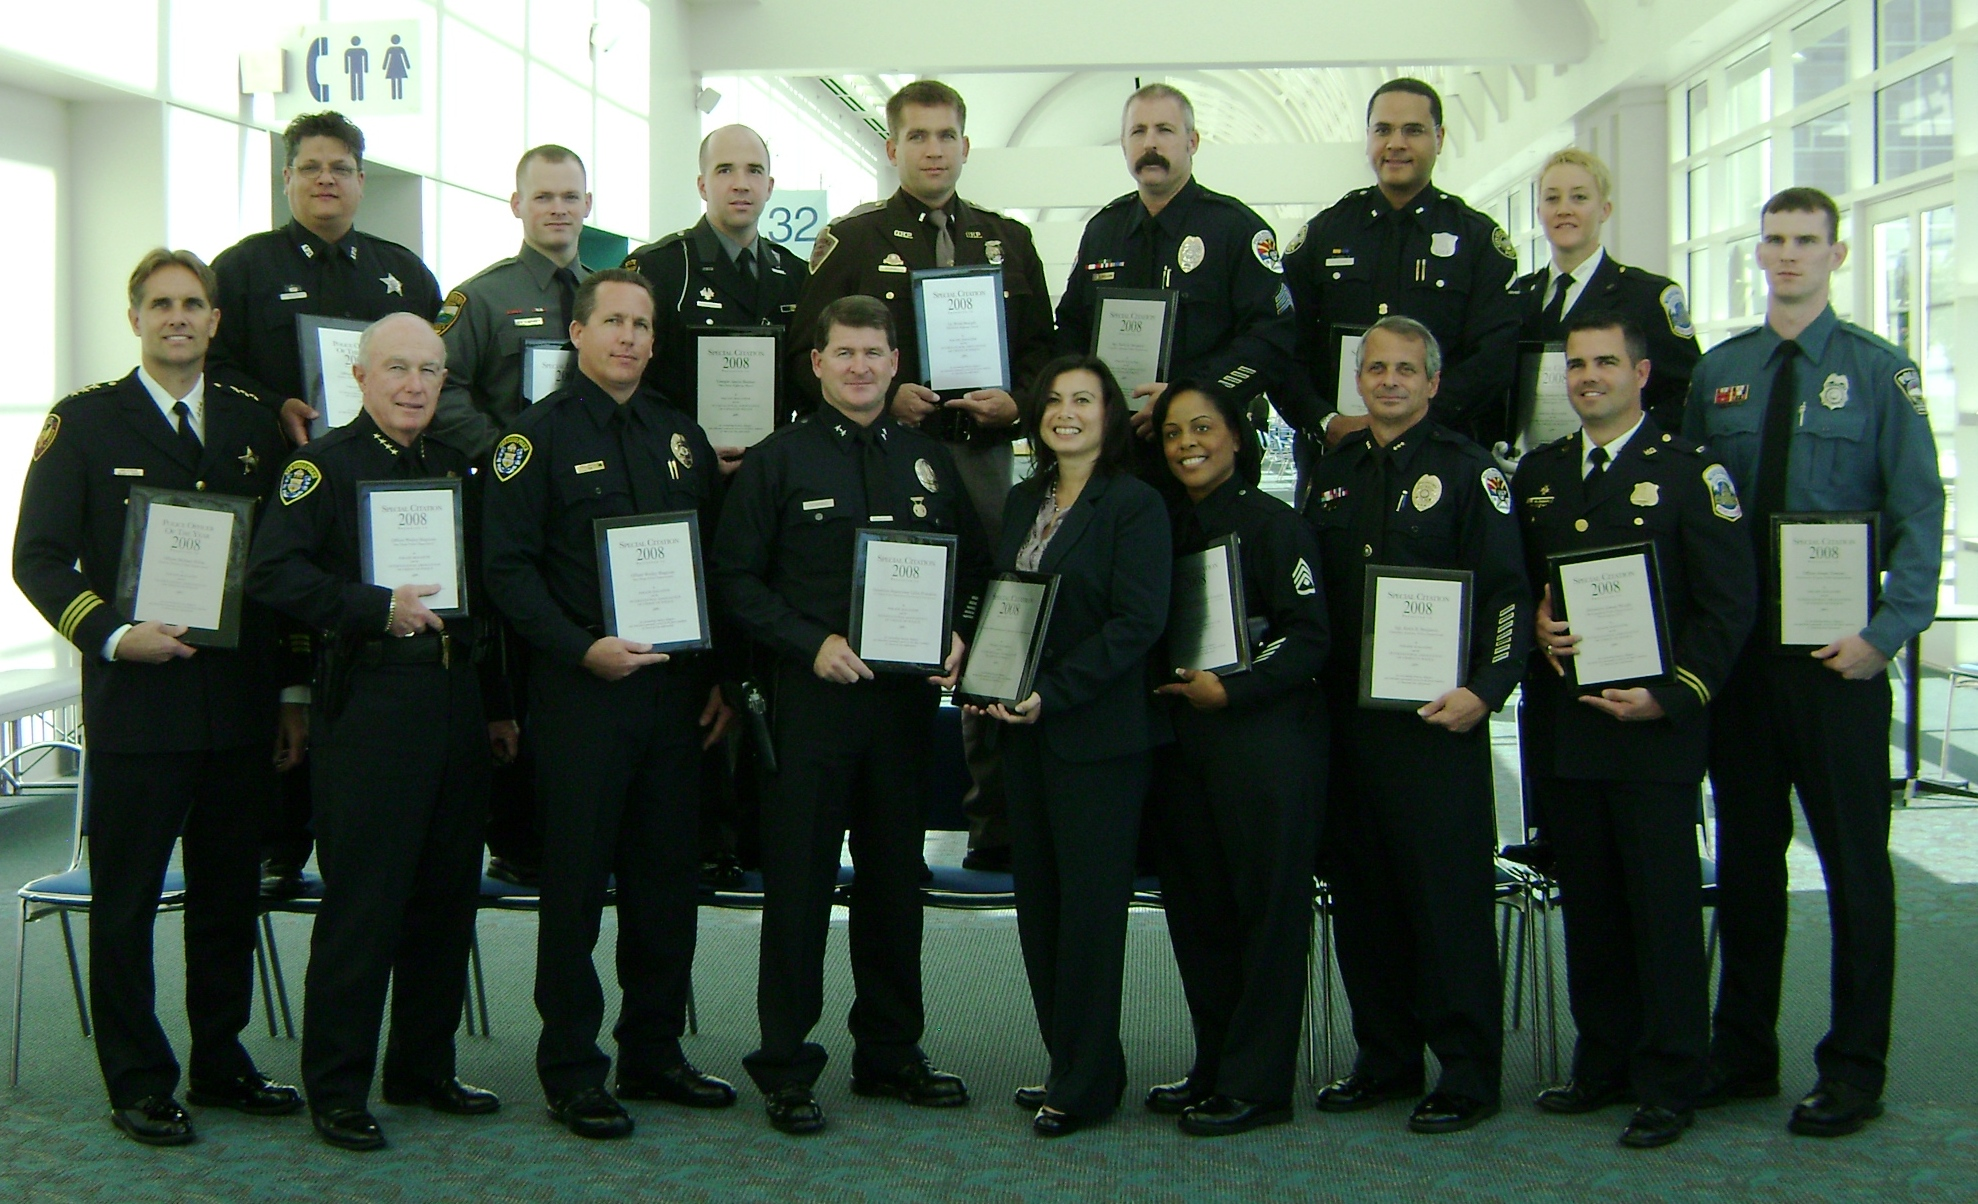 The Los Angeles Police Foundation | News